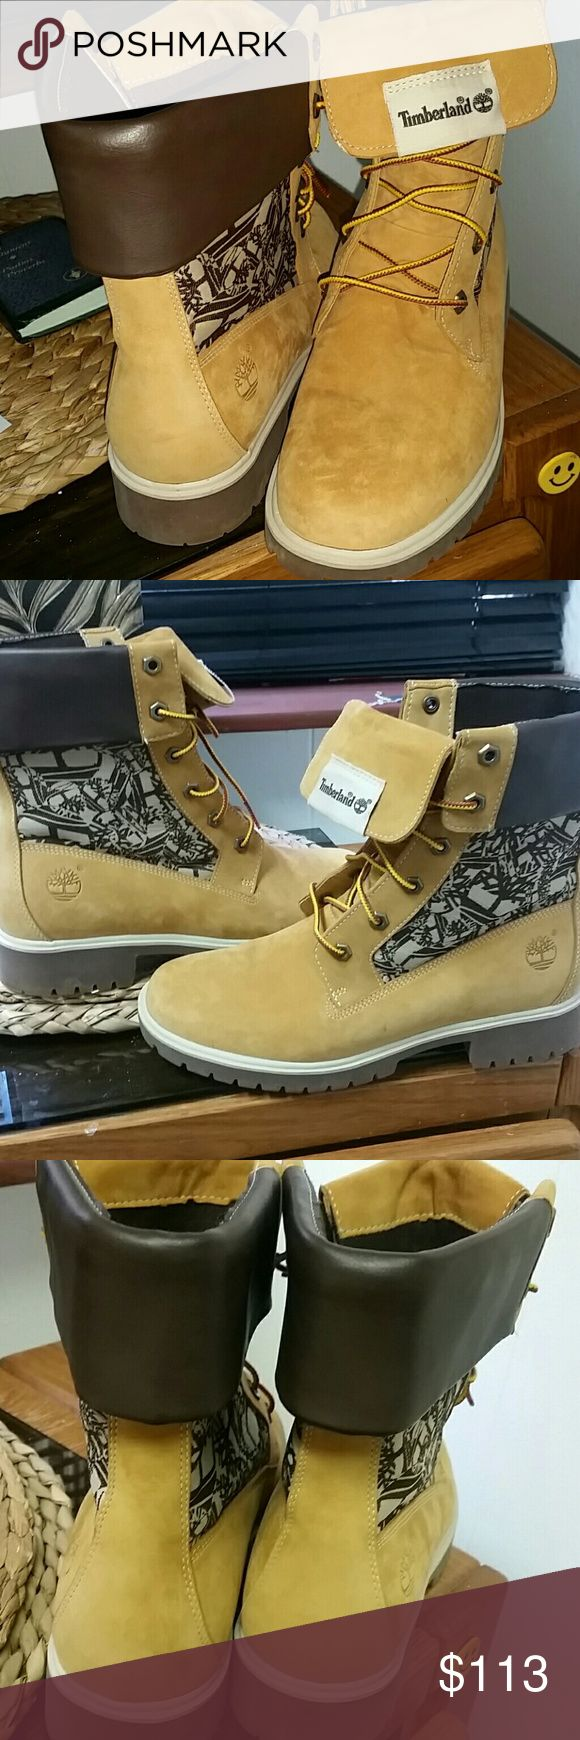 8.5 women's tims Too big for me:(((( they were a gift and I asked how much and he said $125/sale so price is firm or I will stuff socks in my foot :oP so sad cuz I love them:(((no returns due to sale Timberland Shoes Combat & Moto Boots